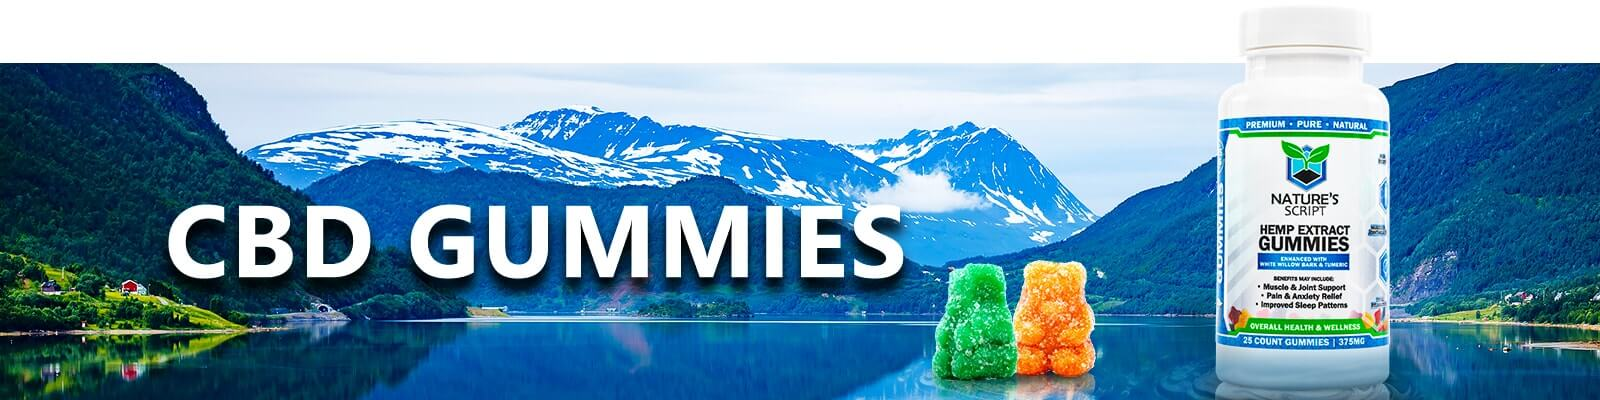 CBD Gummies product banner